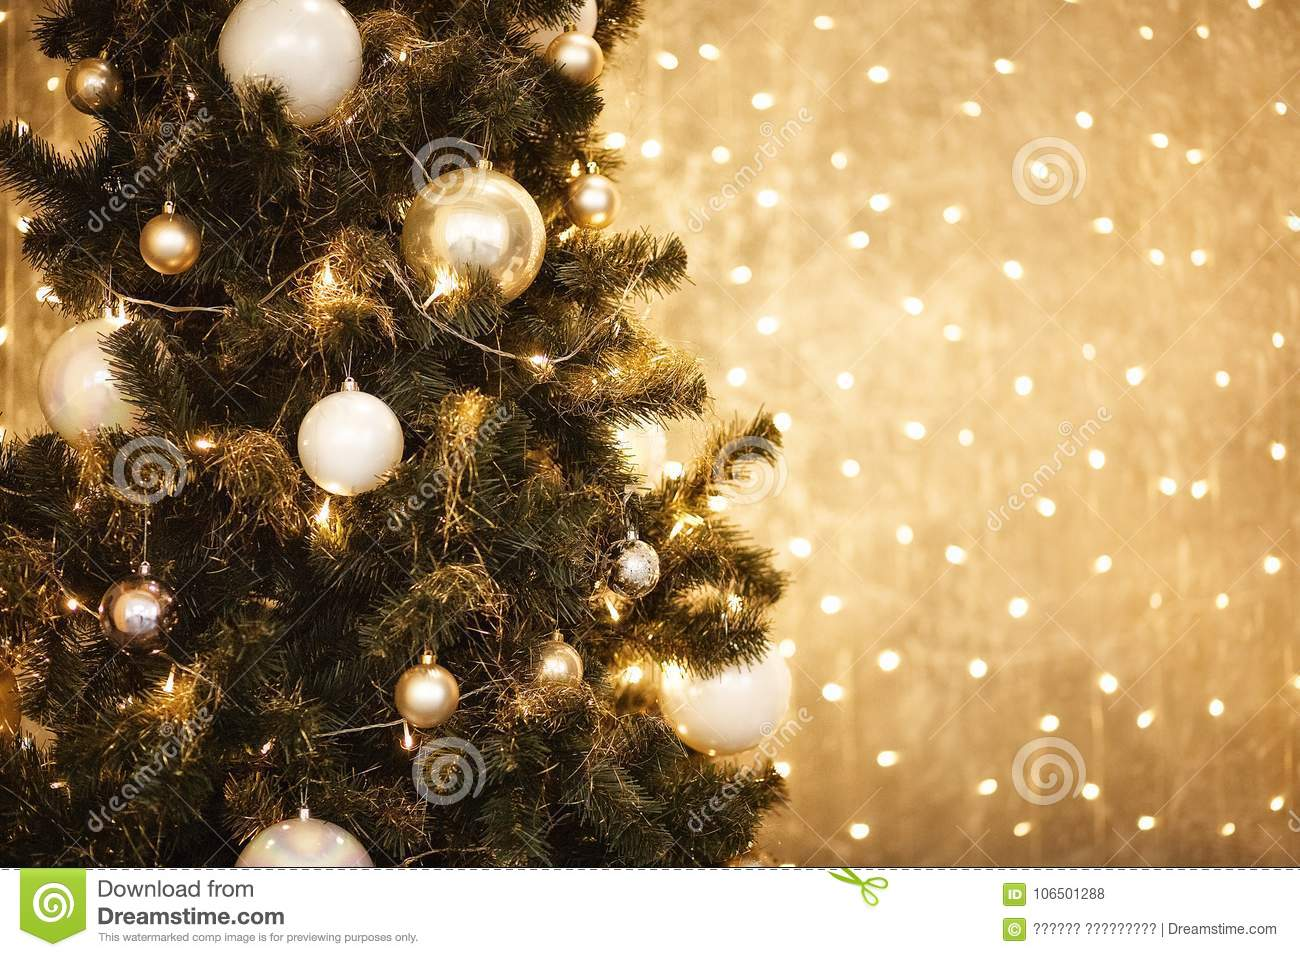 download gold christmas background of de focused lights with decorated tree 2018 stock photo